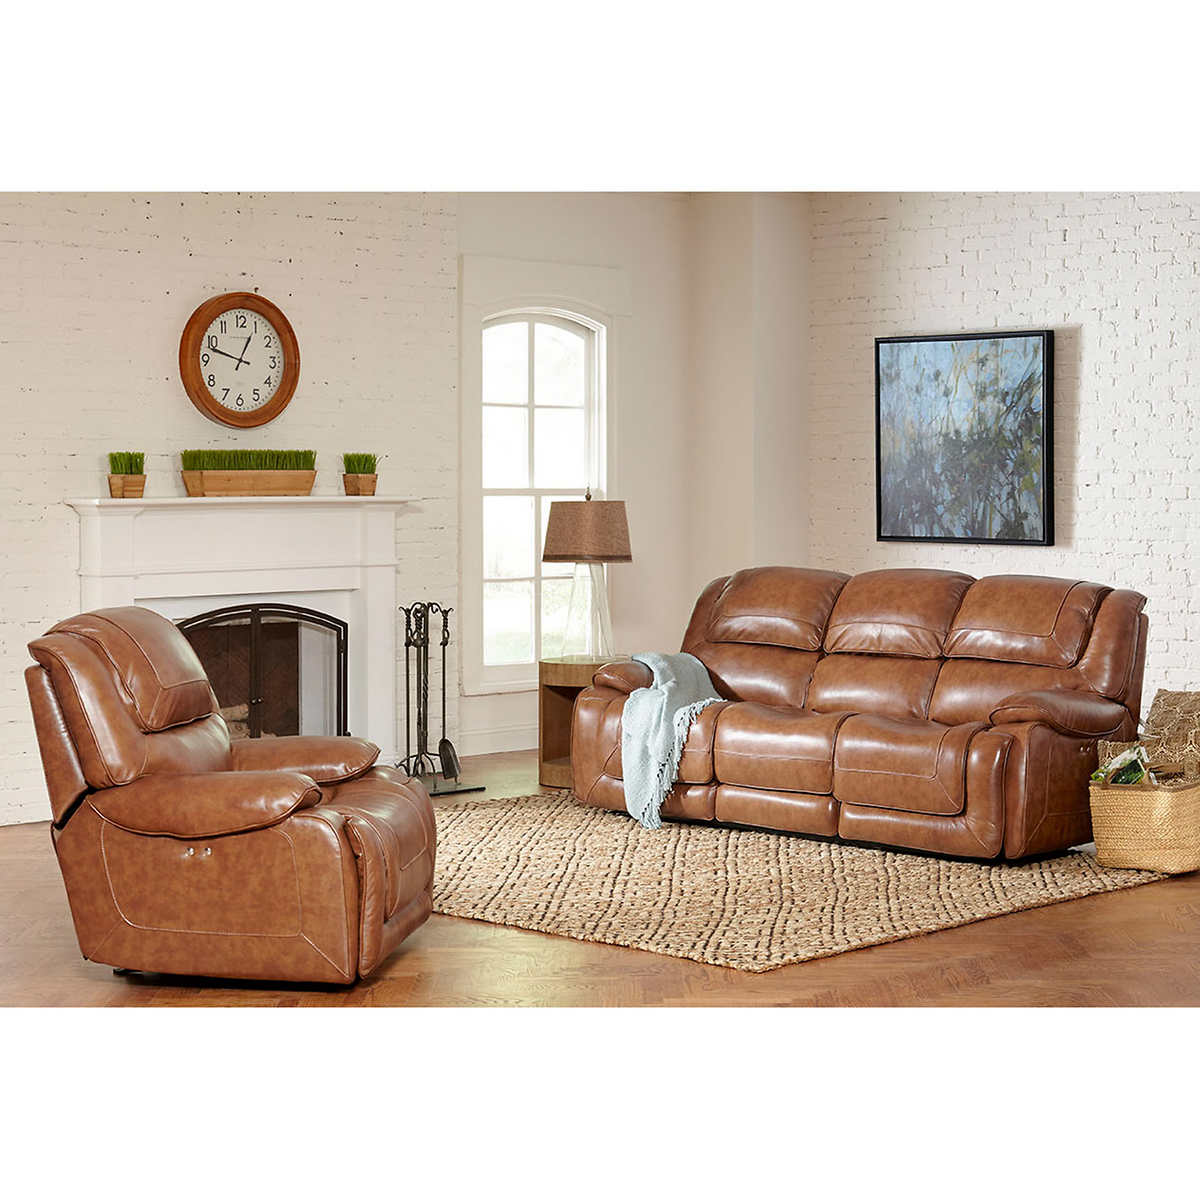 Costco Furniture Living Room Awesome Ideas